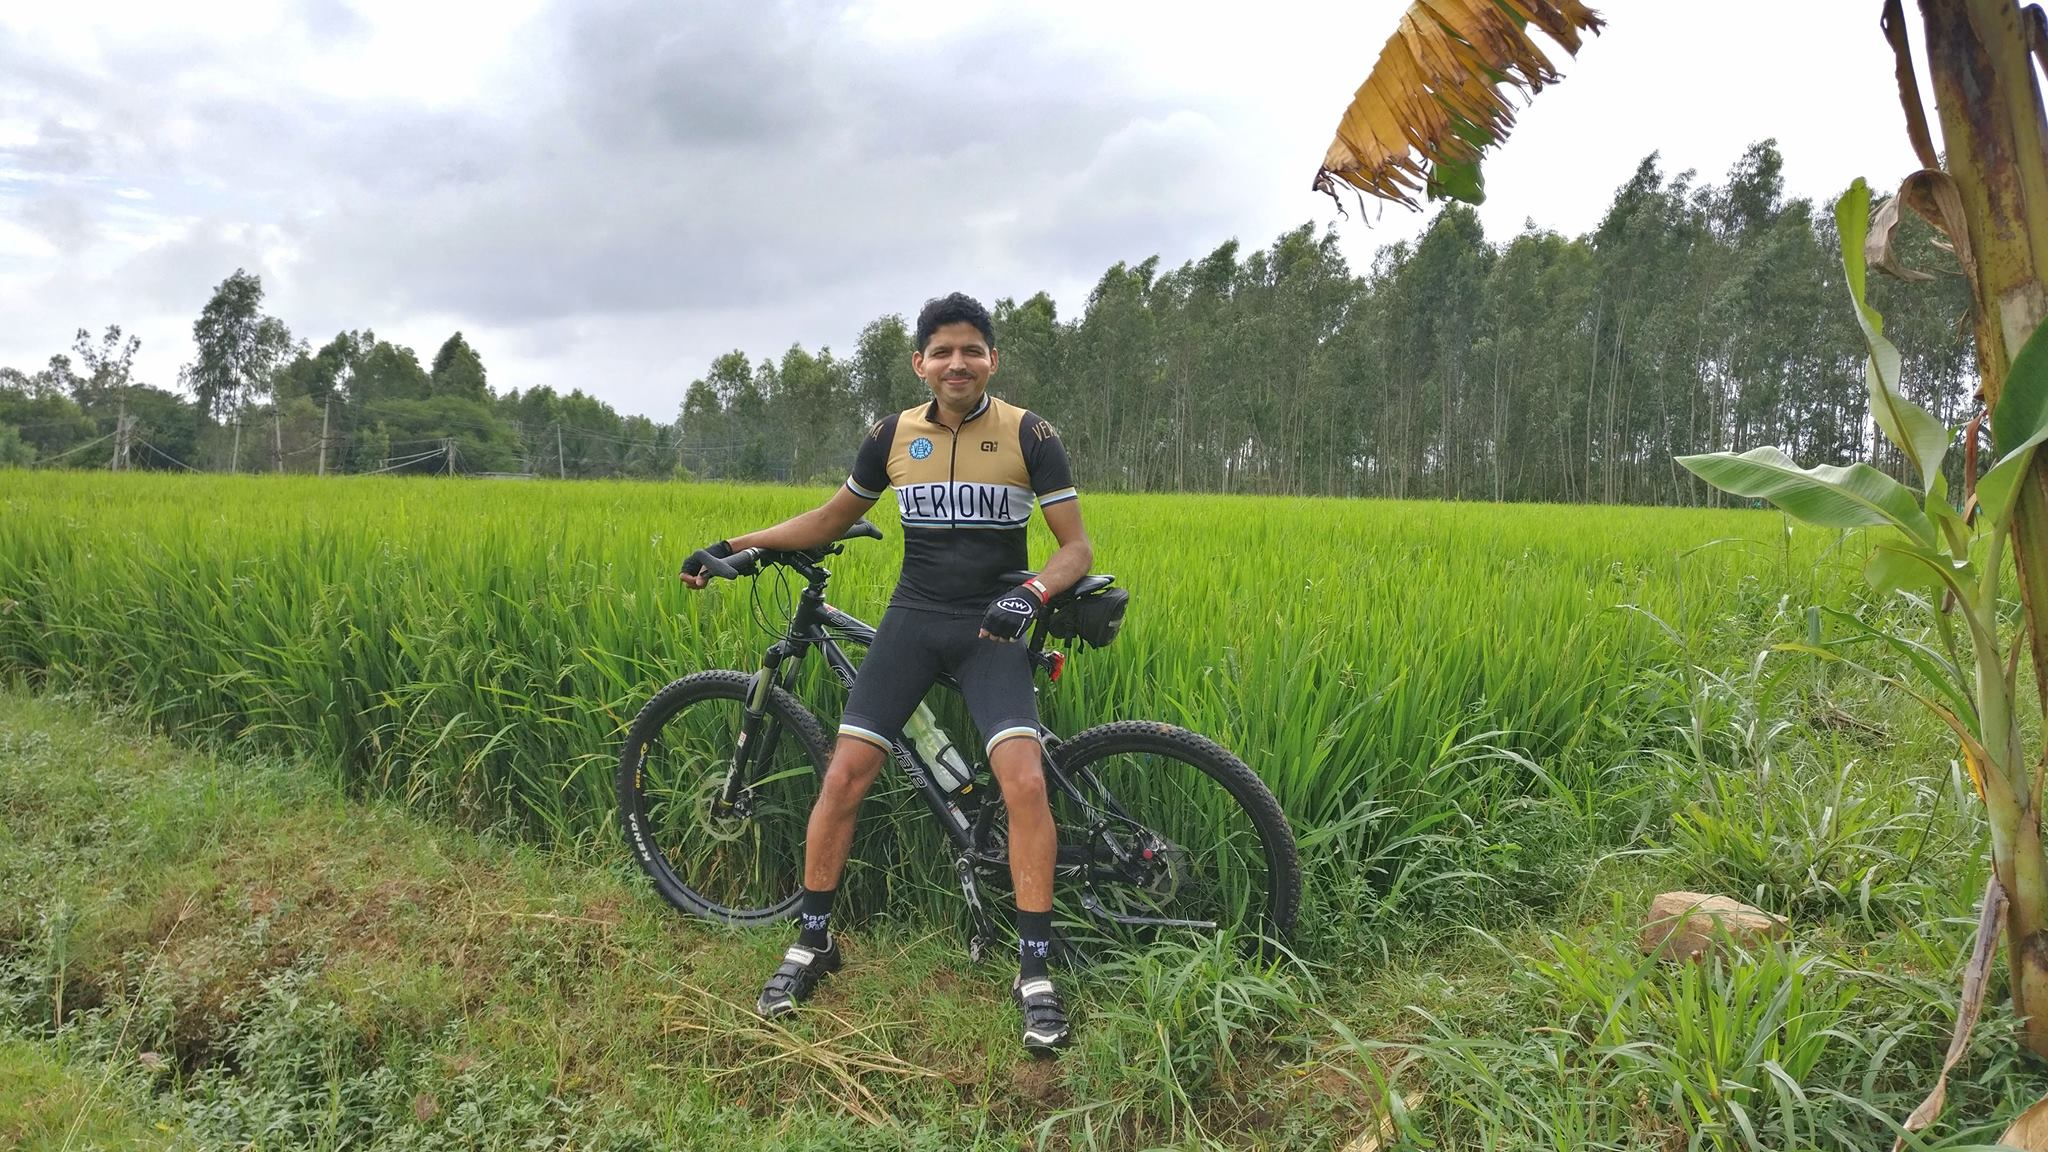 Biju Kunnappada on a weekend ride in Bengaluru enjoying the best of nature blissfulness through cycling